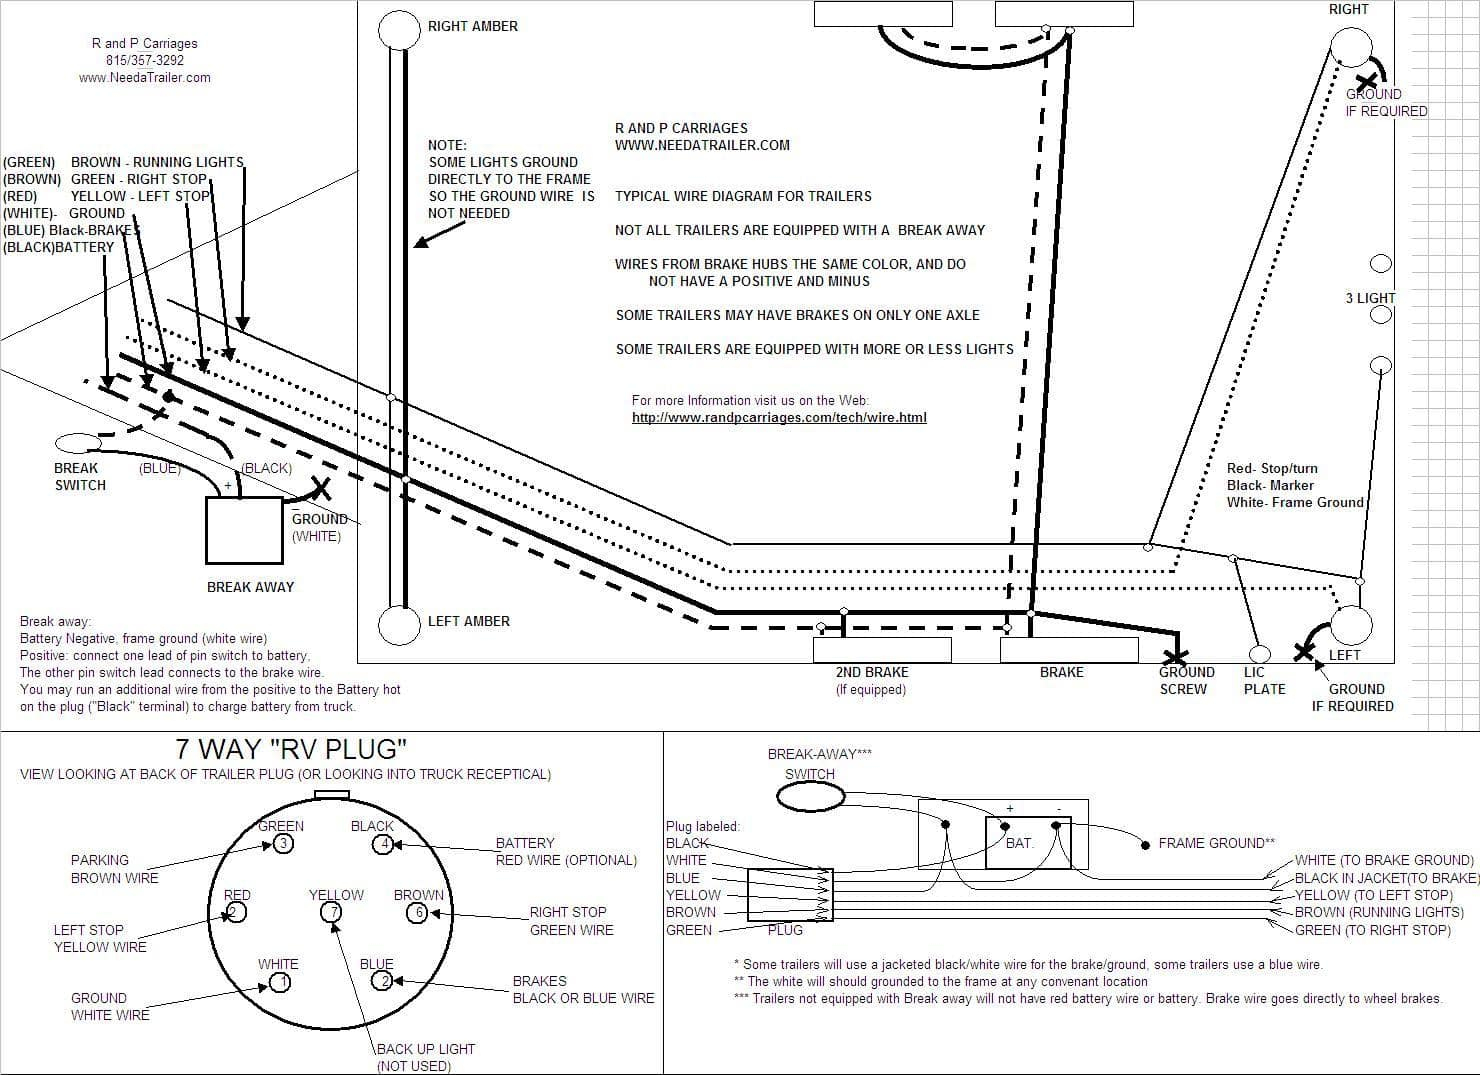 7 Way Plug Information | R And P Carriages | Cargo, Utility, Dump - Wiring Diagram For Trailer With Brakes